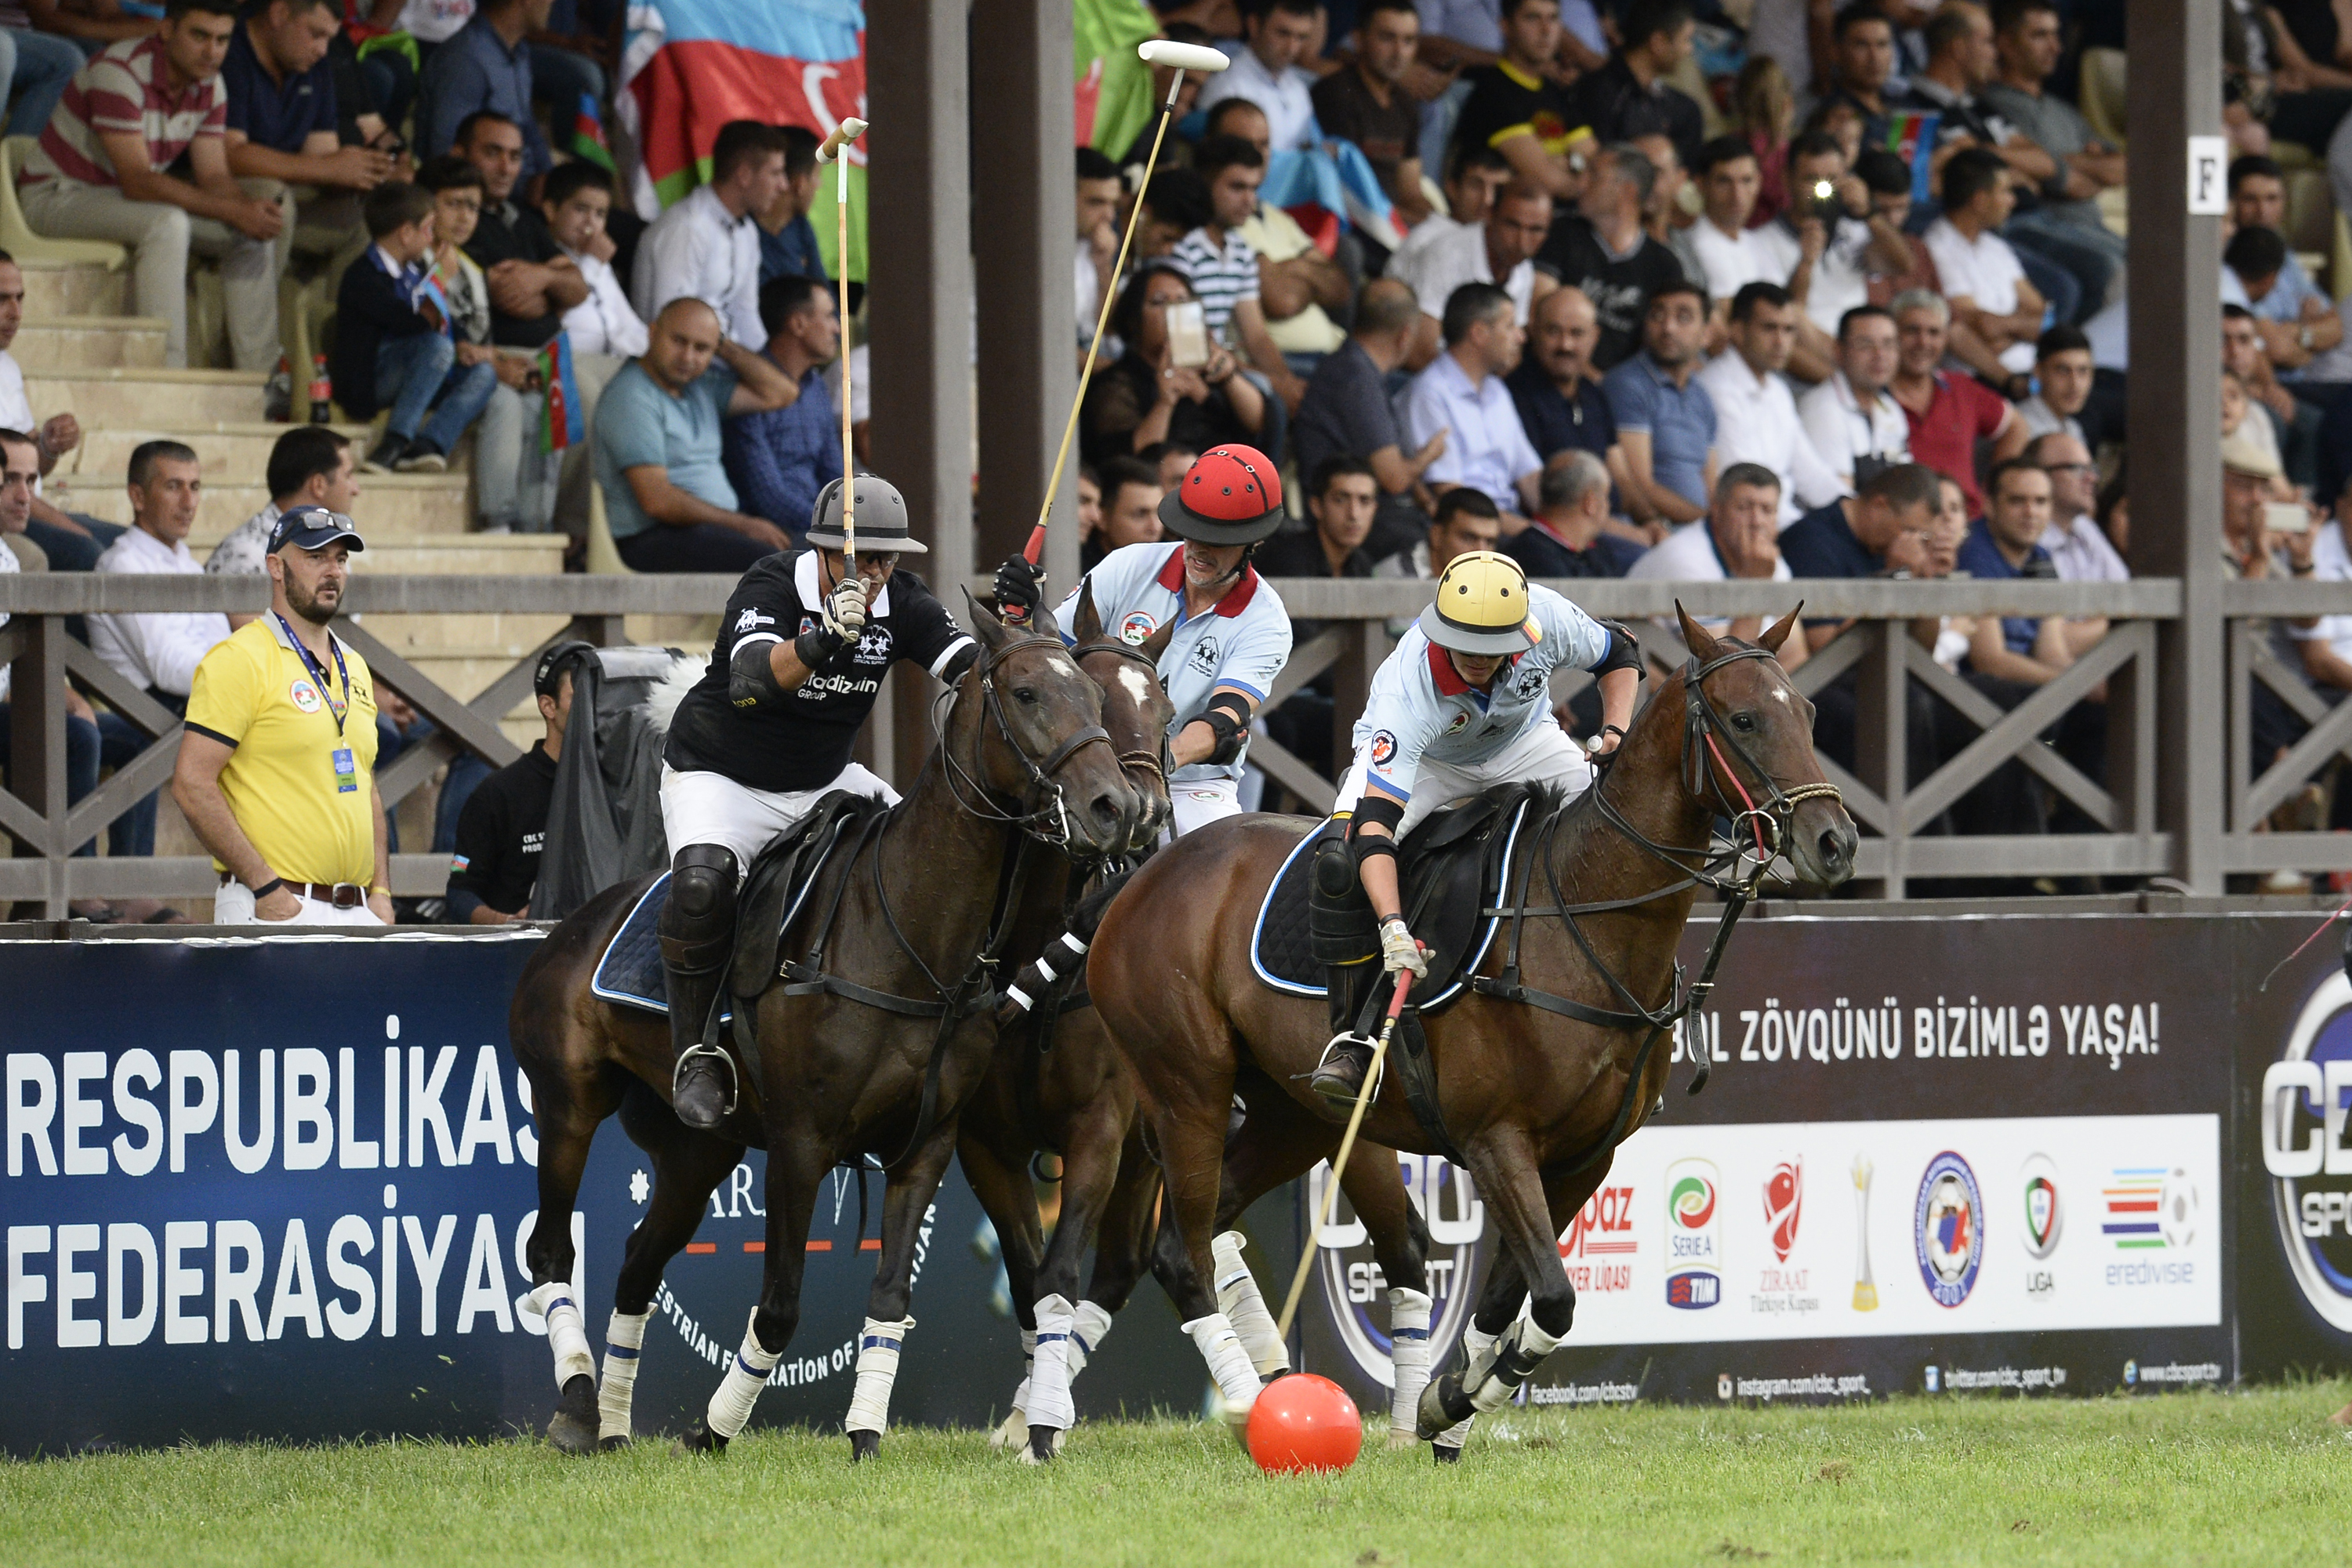 5th Arena Polo World Cup Azerbaijan 2017 from 8th - 10th September 2017